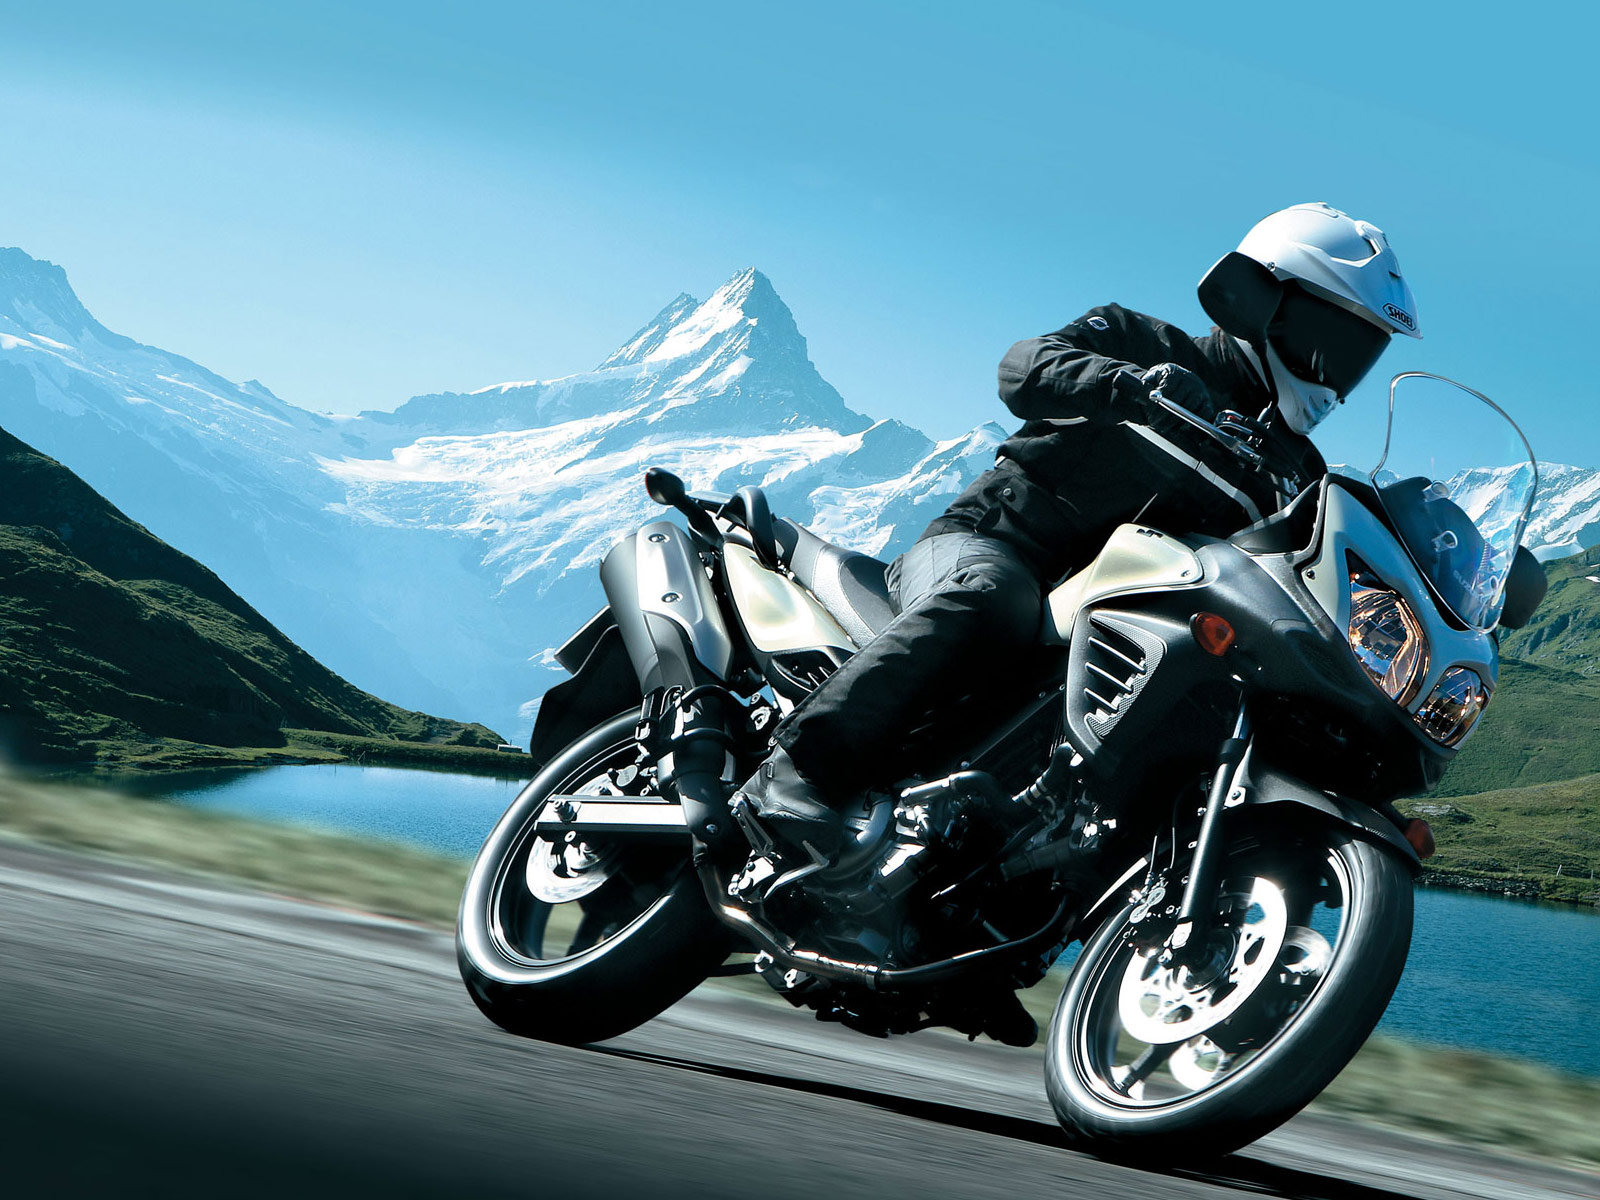 2012 SUZUKI V-Strom 650 ABS motorcycle wallpaper